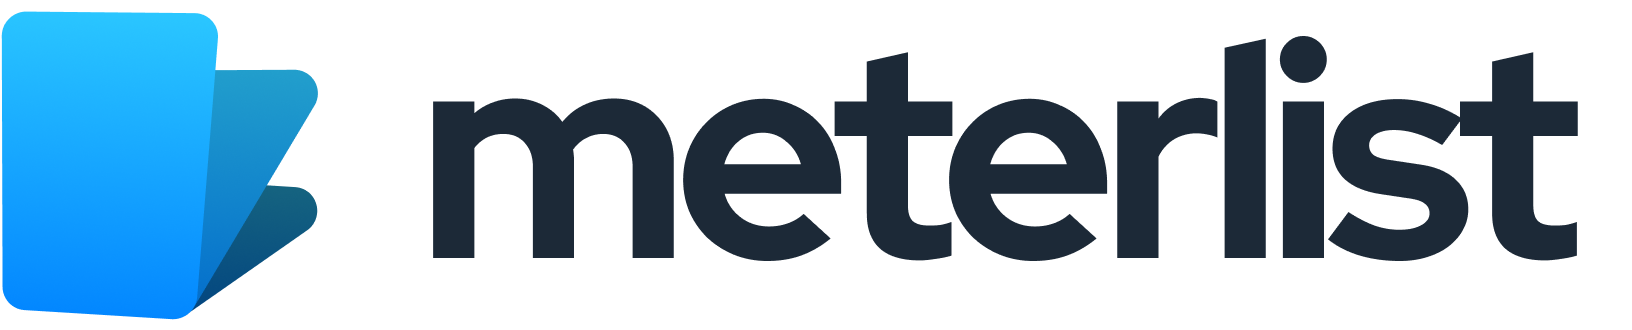 Modern logo design for meterlist.com